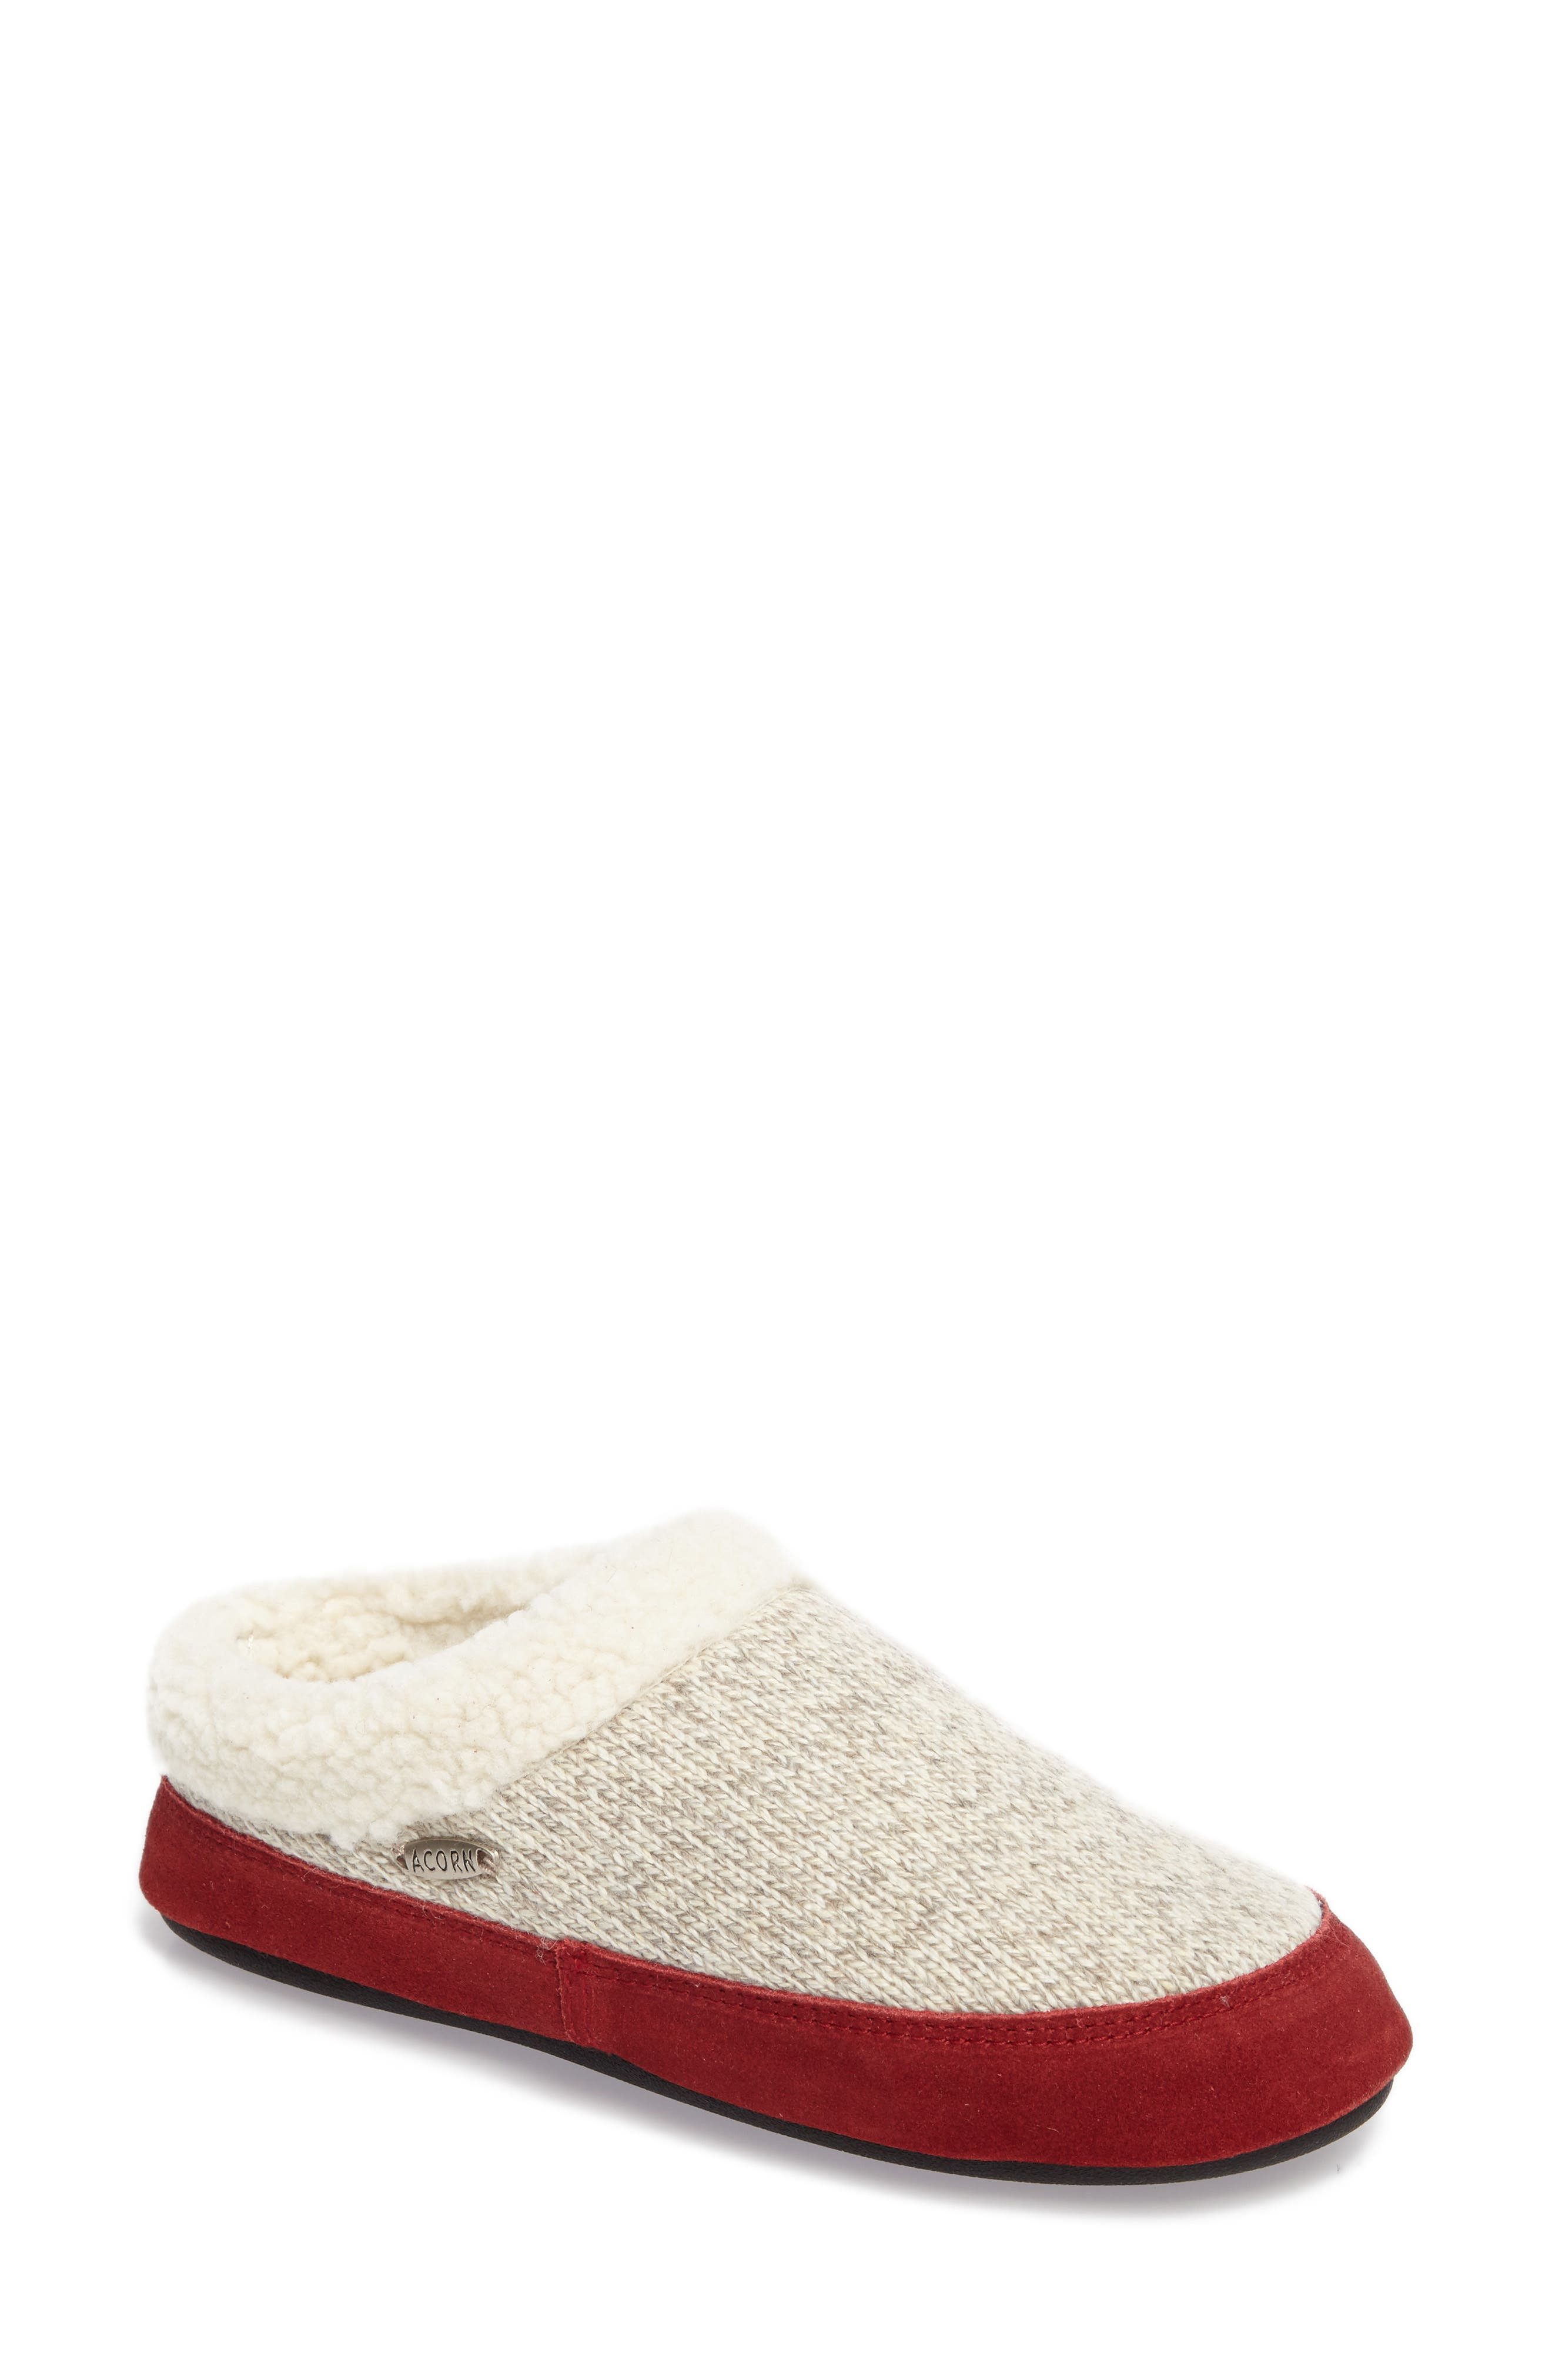 Acorn Ragg Mule Slipper (Women)